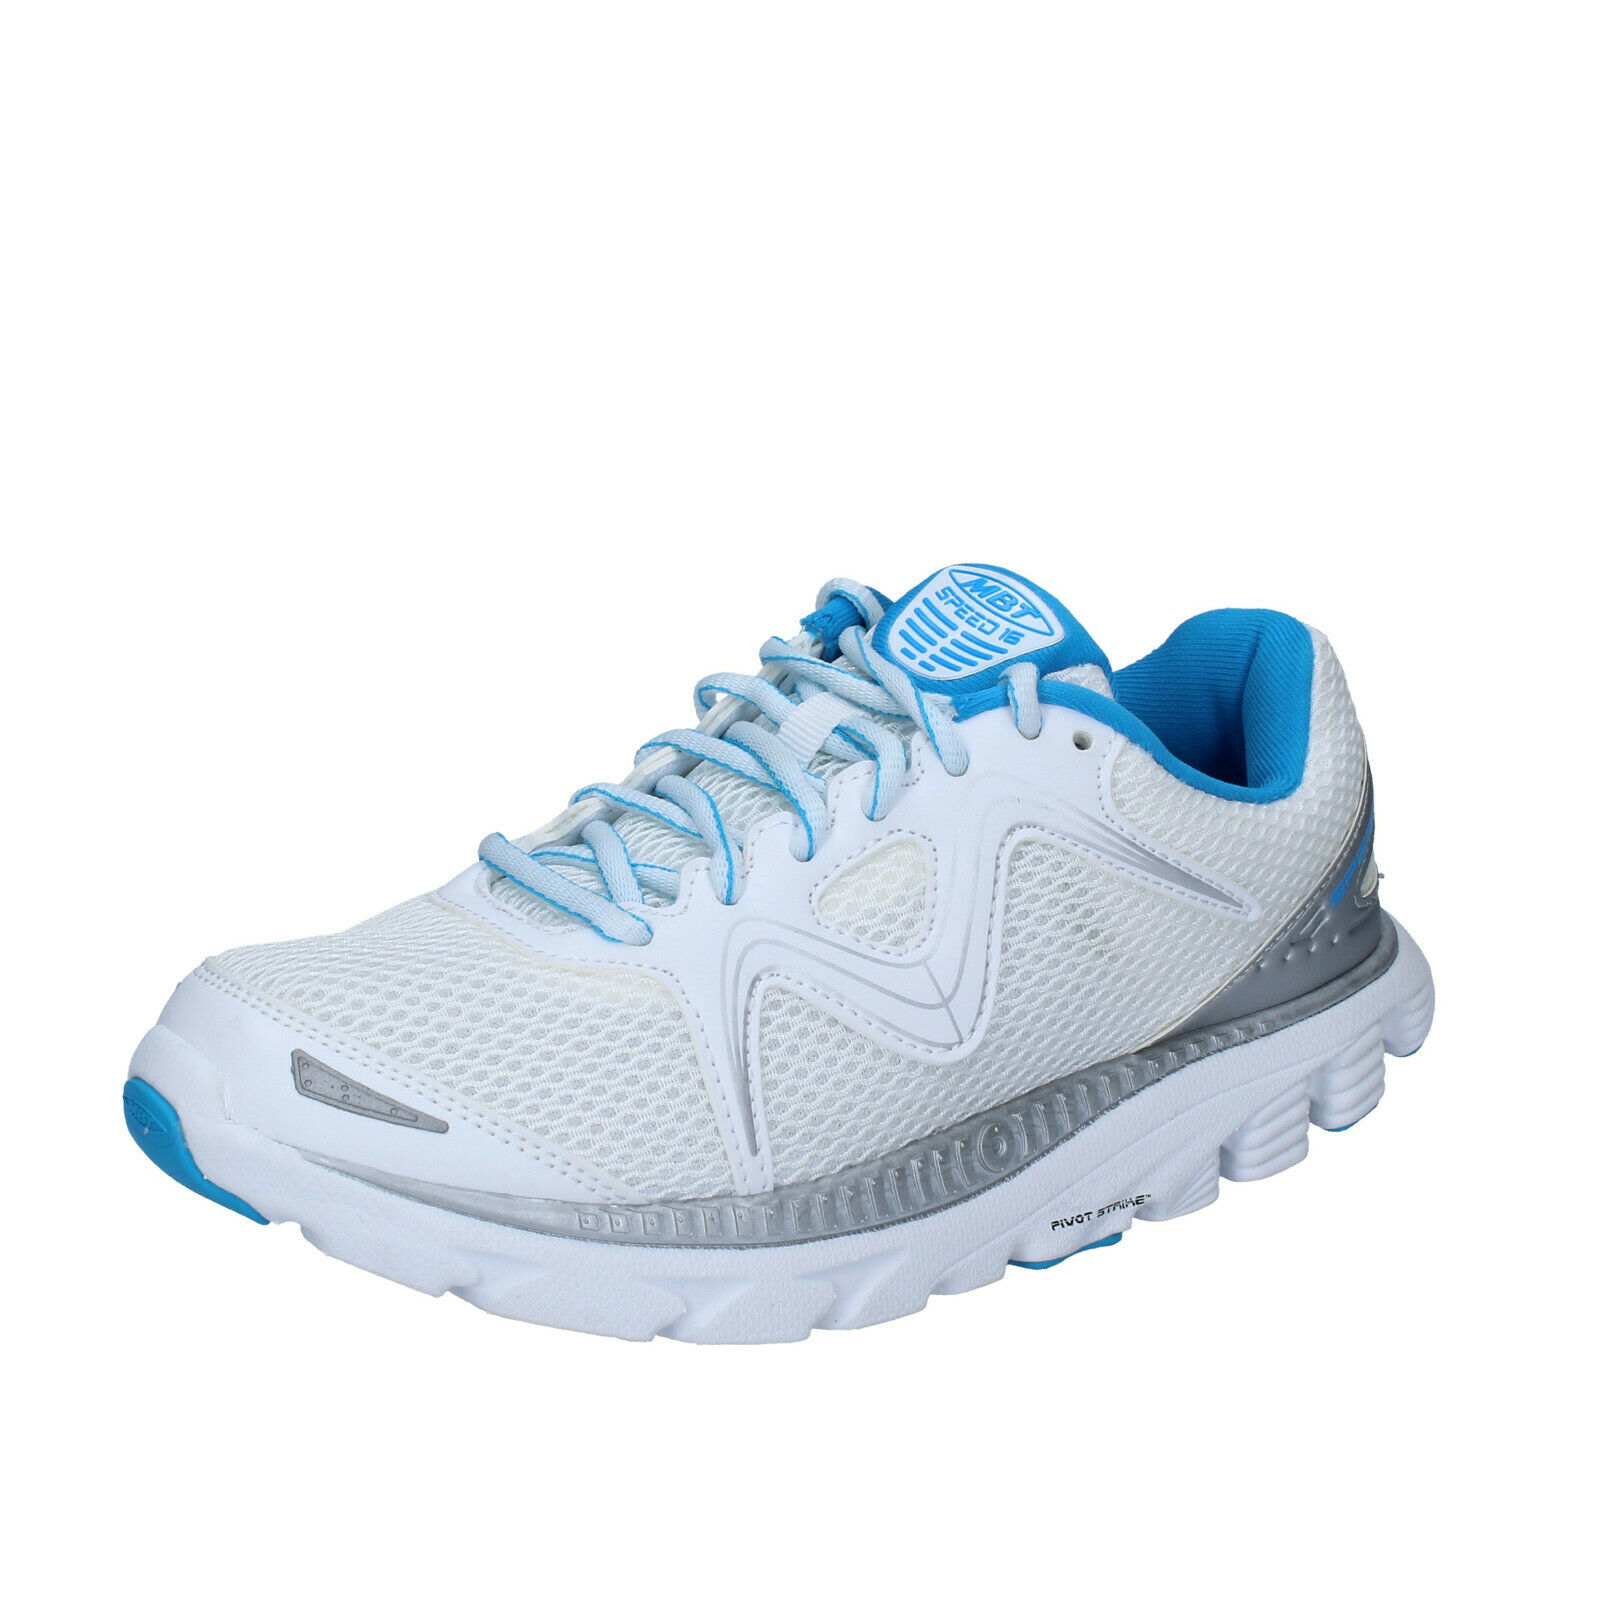 Women's shoes MBT 6,5 () sneakers white textile lightweight BS409-37,5